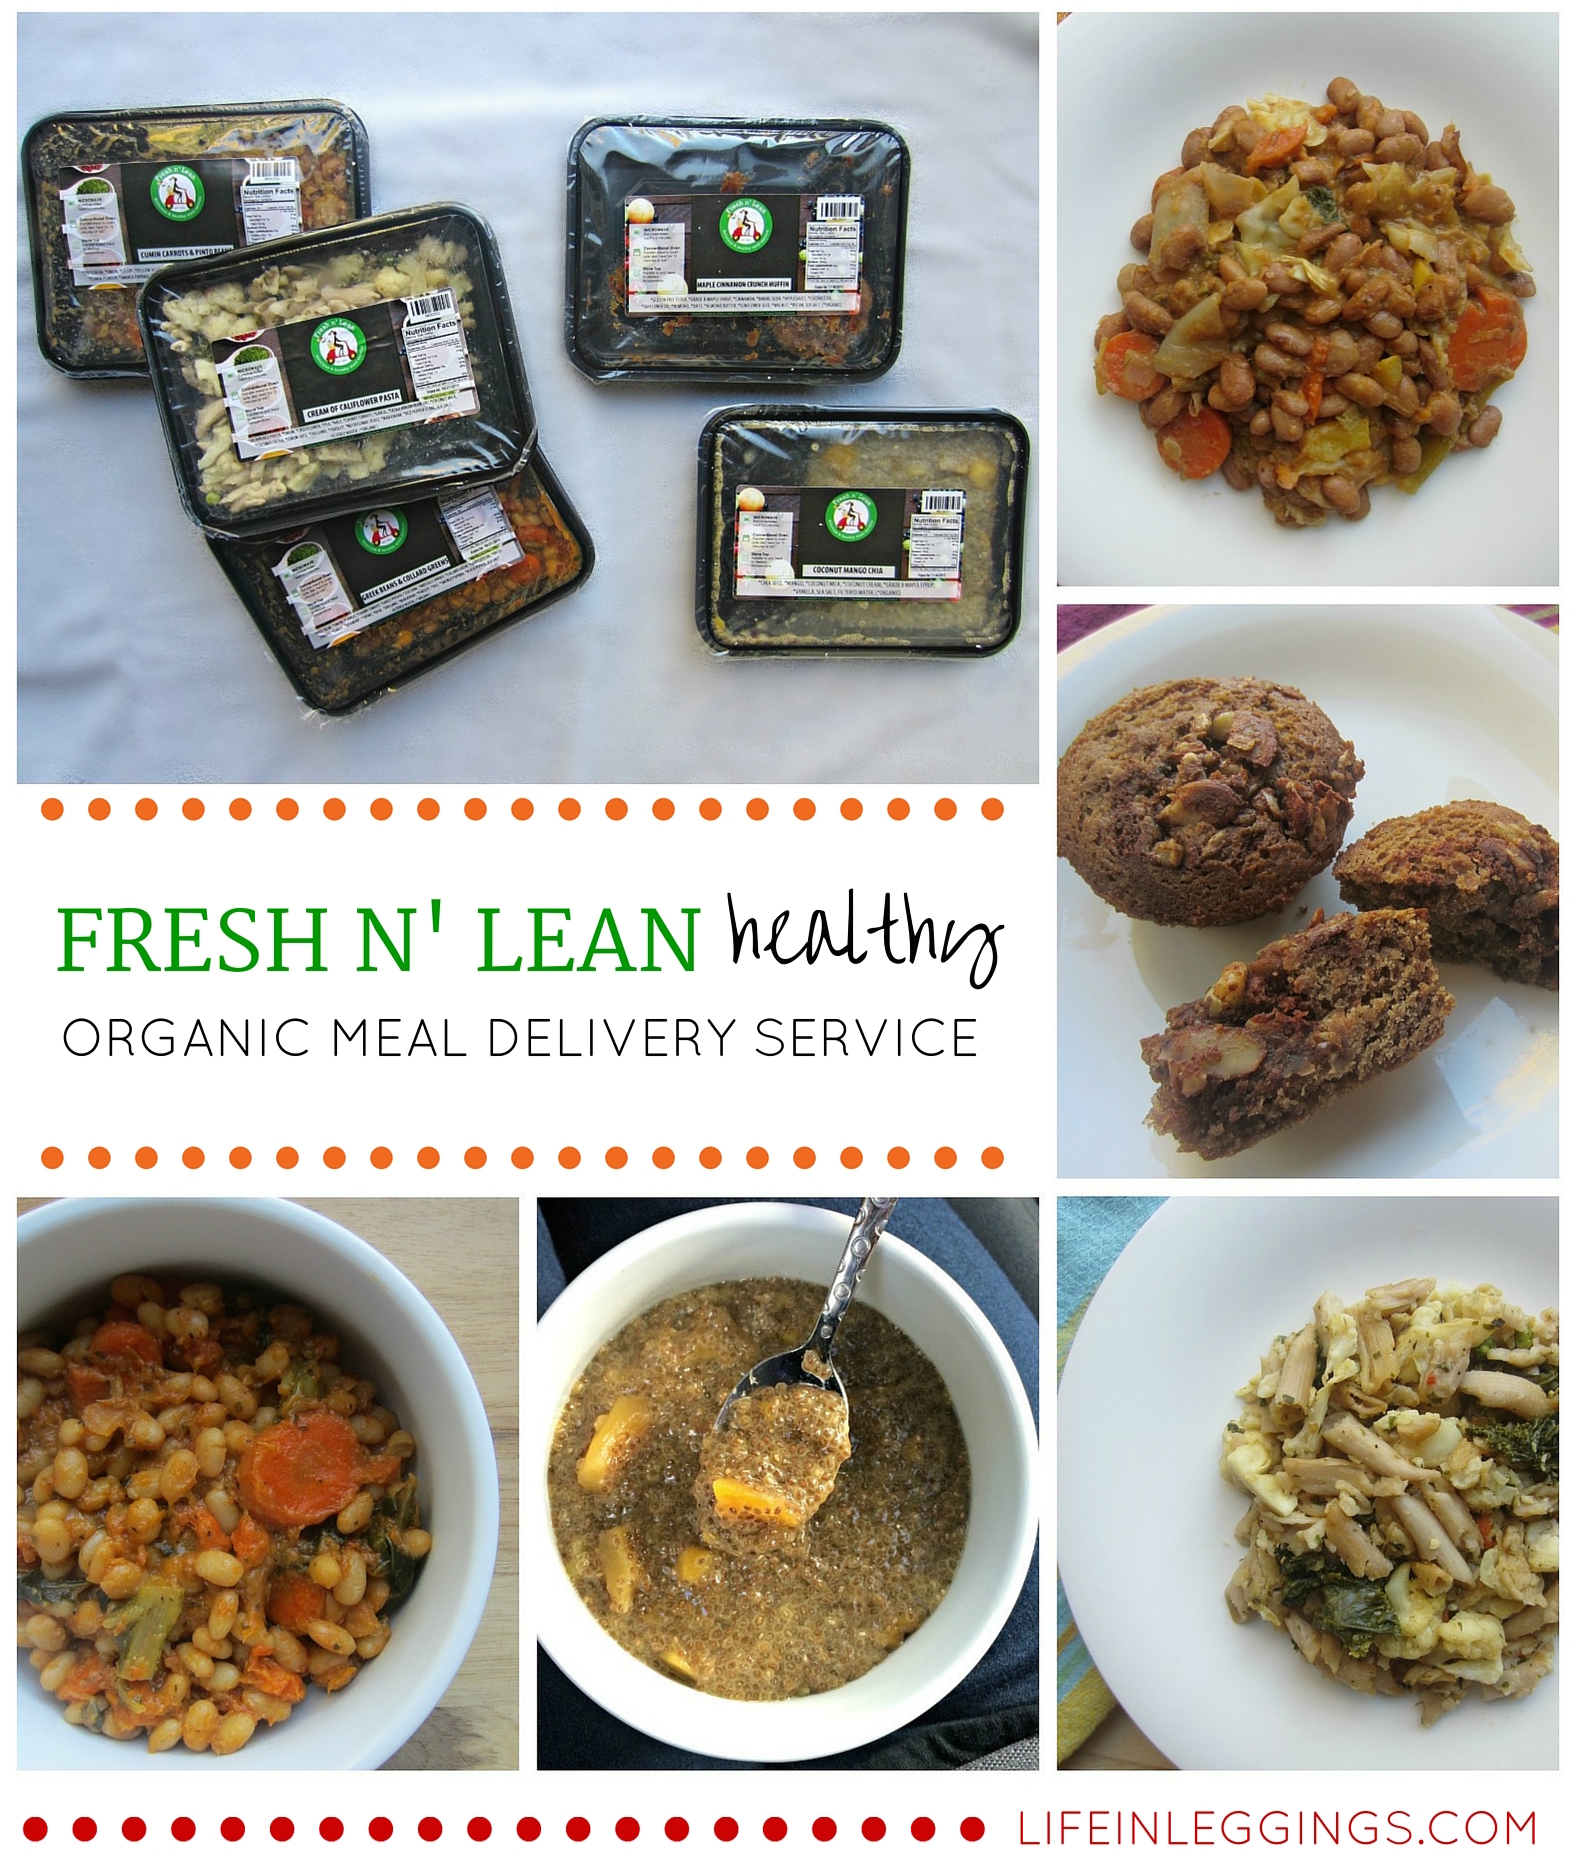 FRESH N' LEAN healthy and delicious organic meal delivery service